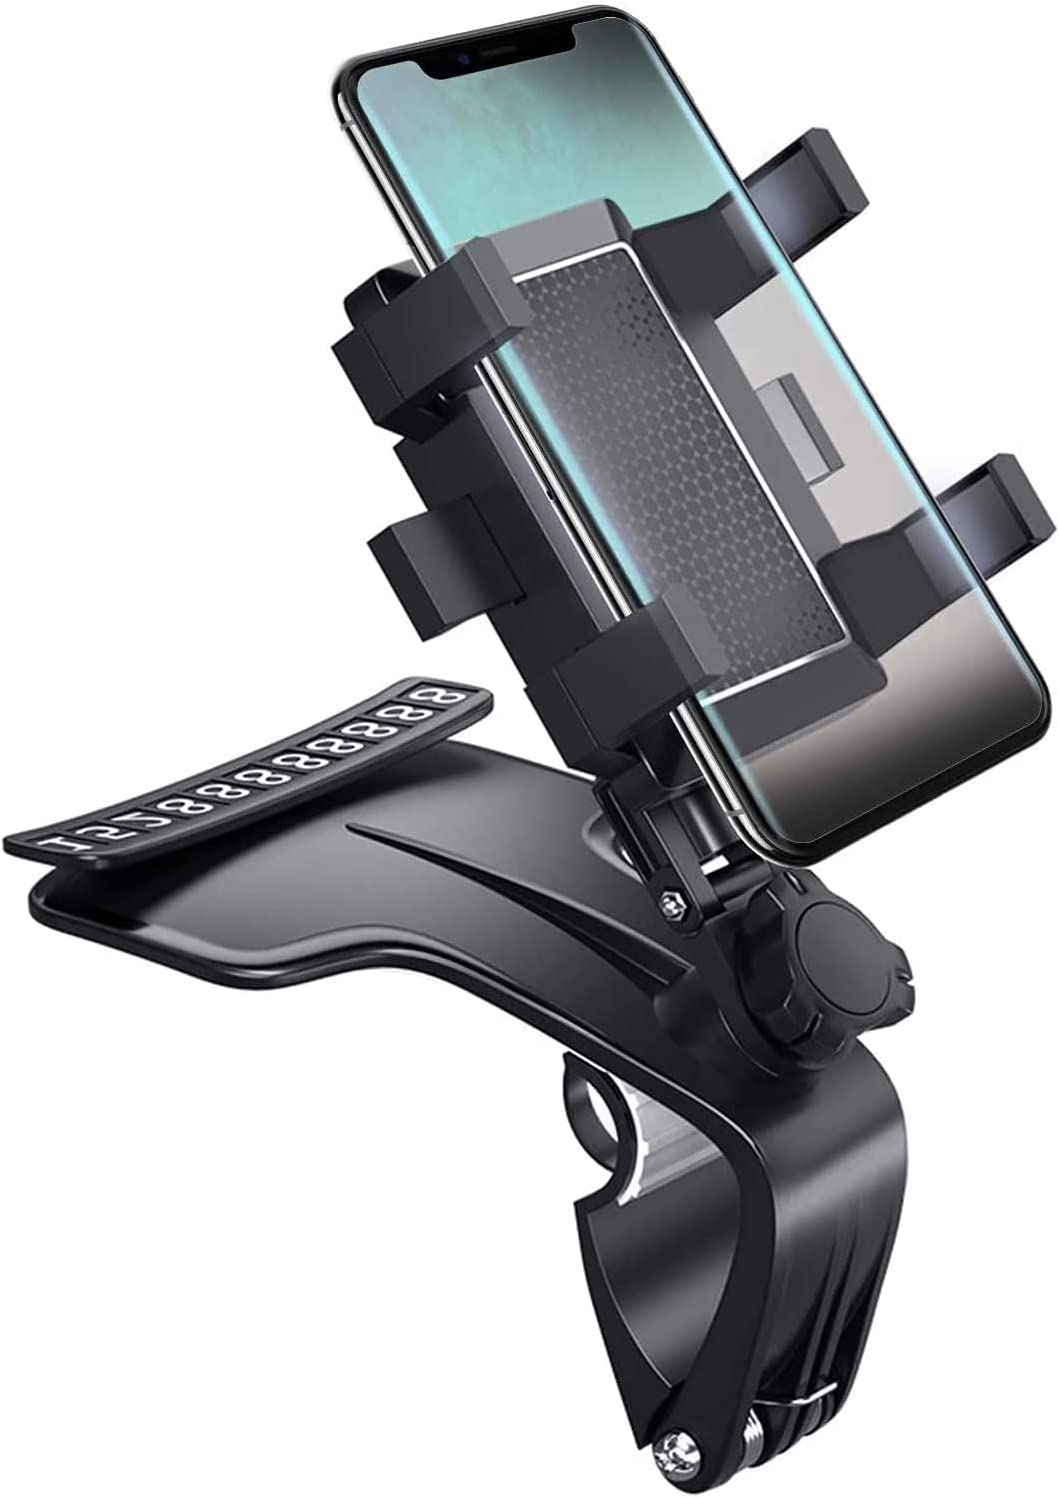 Caixk Millphone New products world's highest quality popular Holder Miller Universal Ranking TOP17 1200 Degree Un Rotation